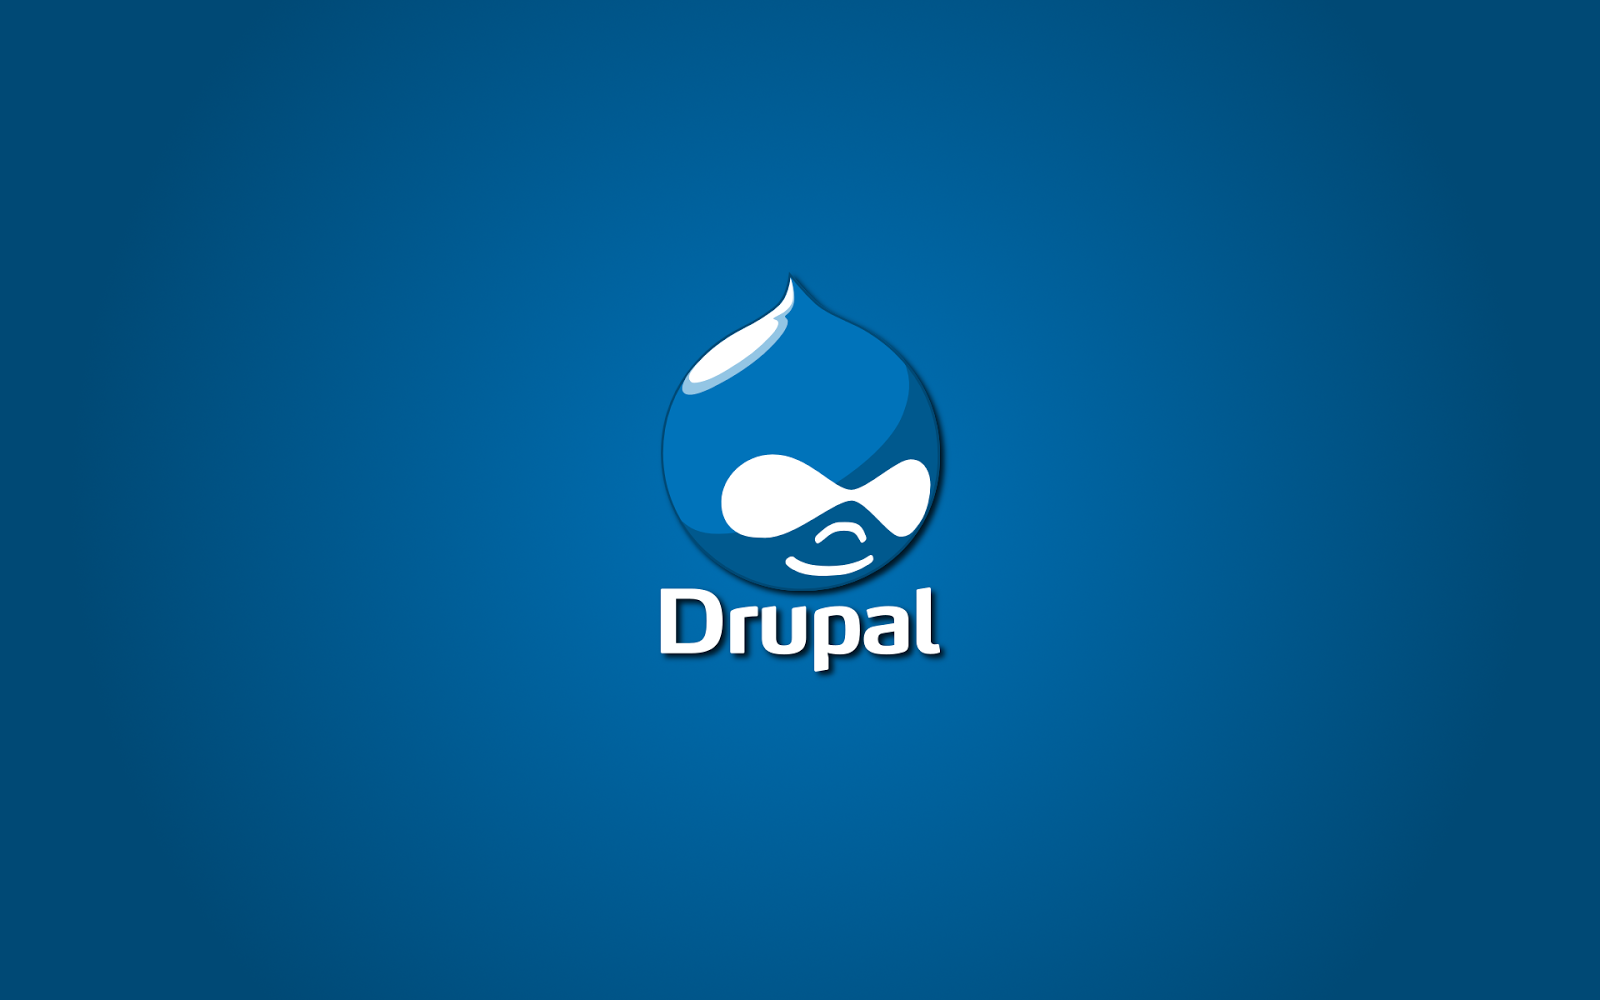 Best books to learn about drupal and cms